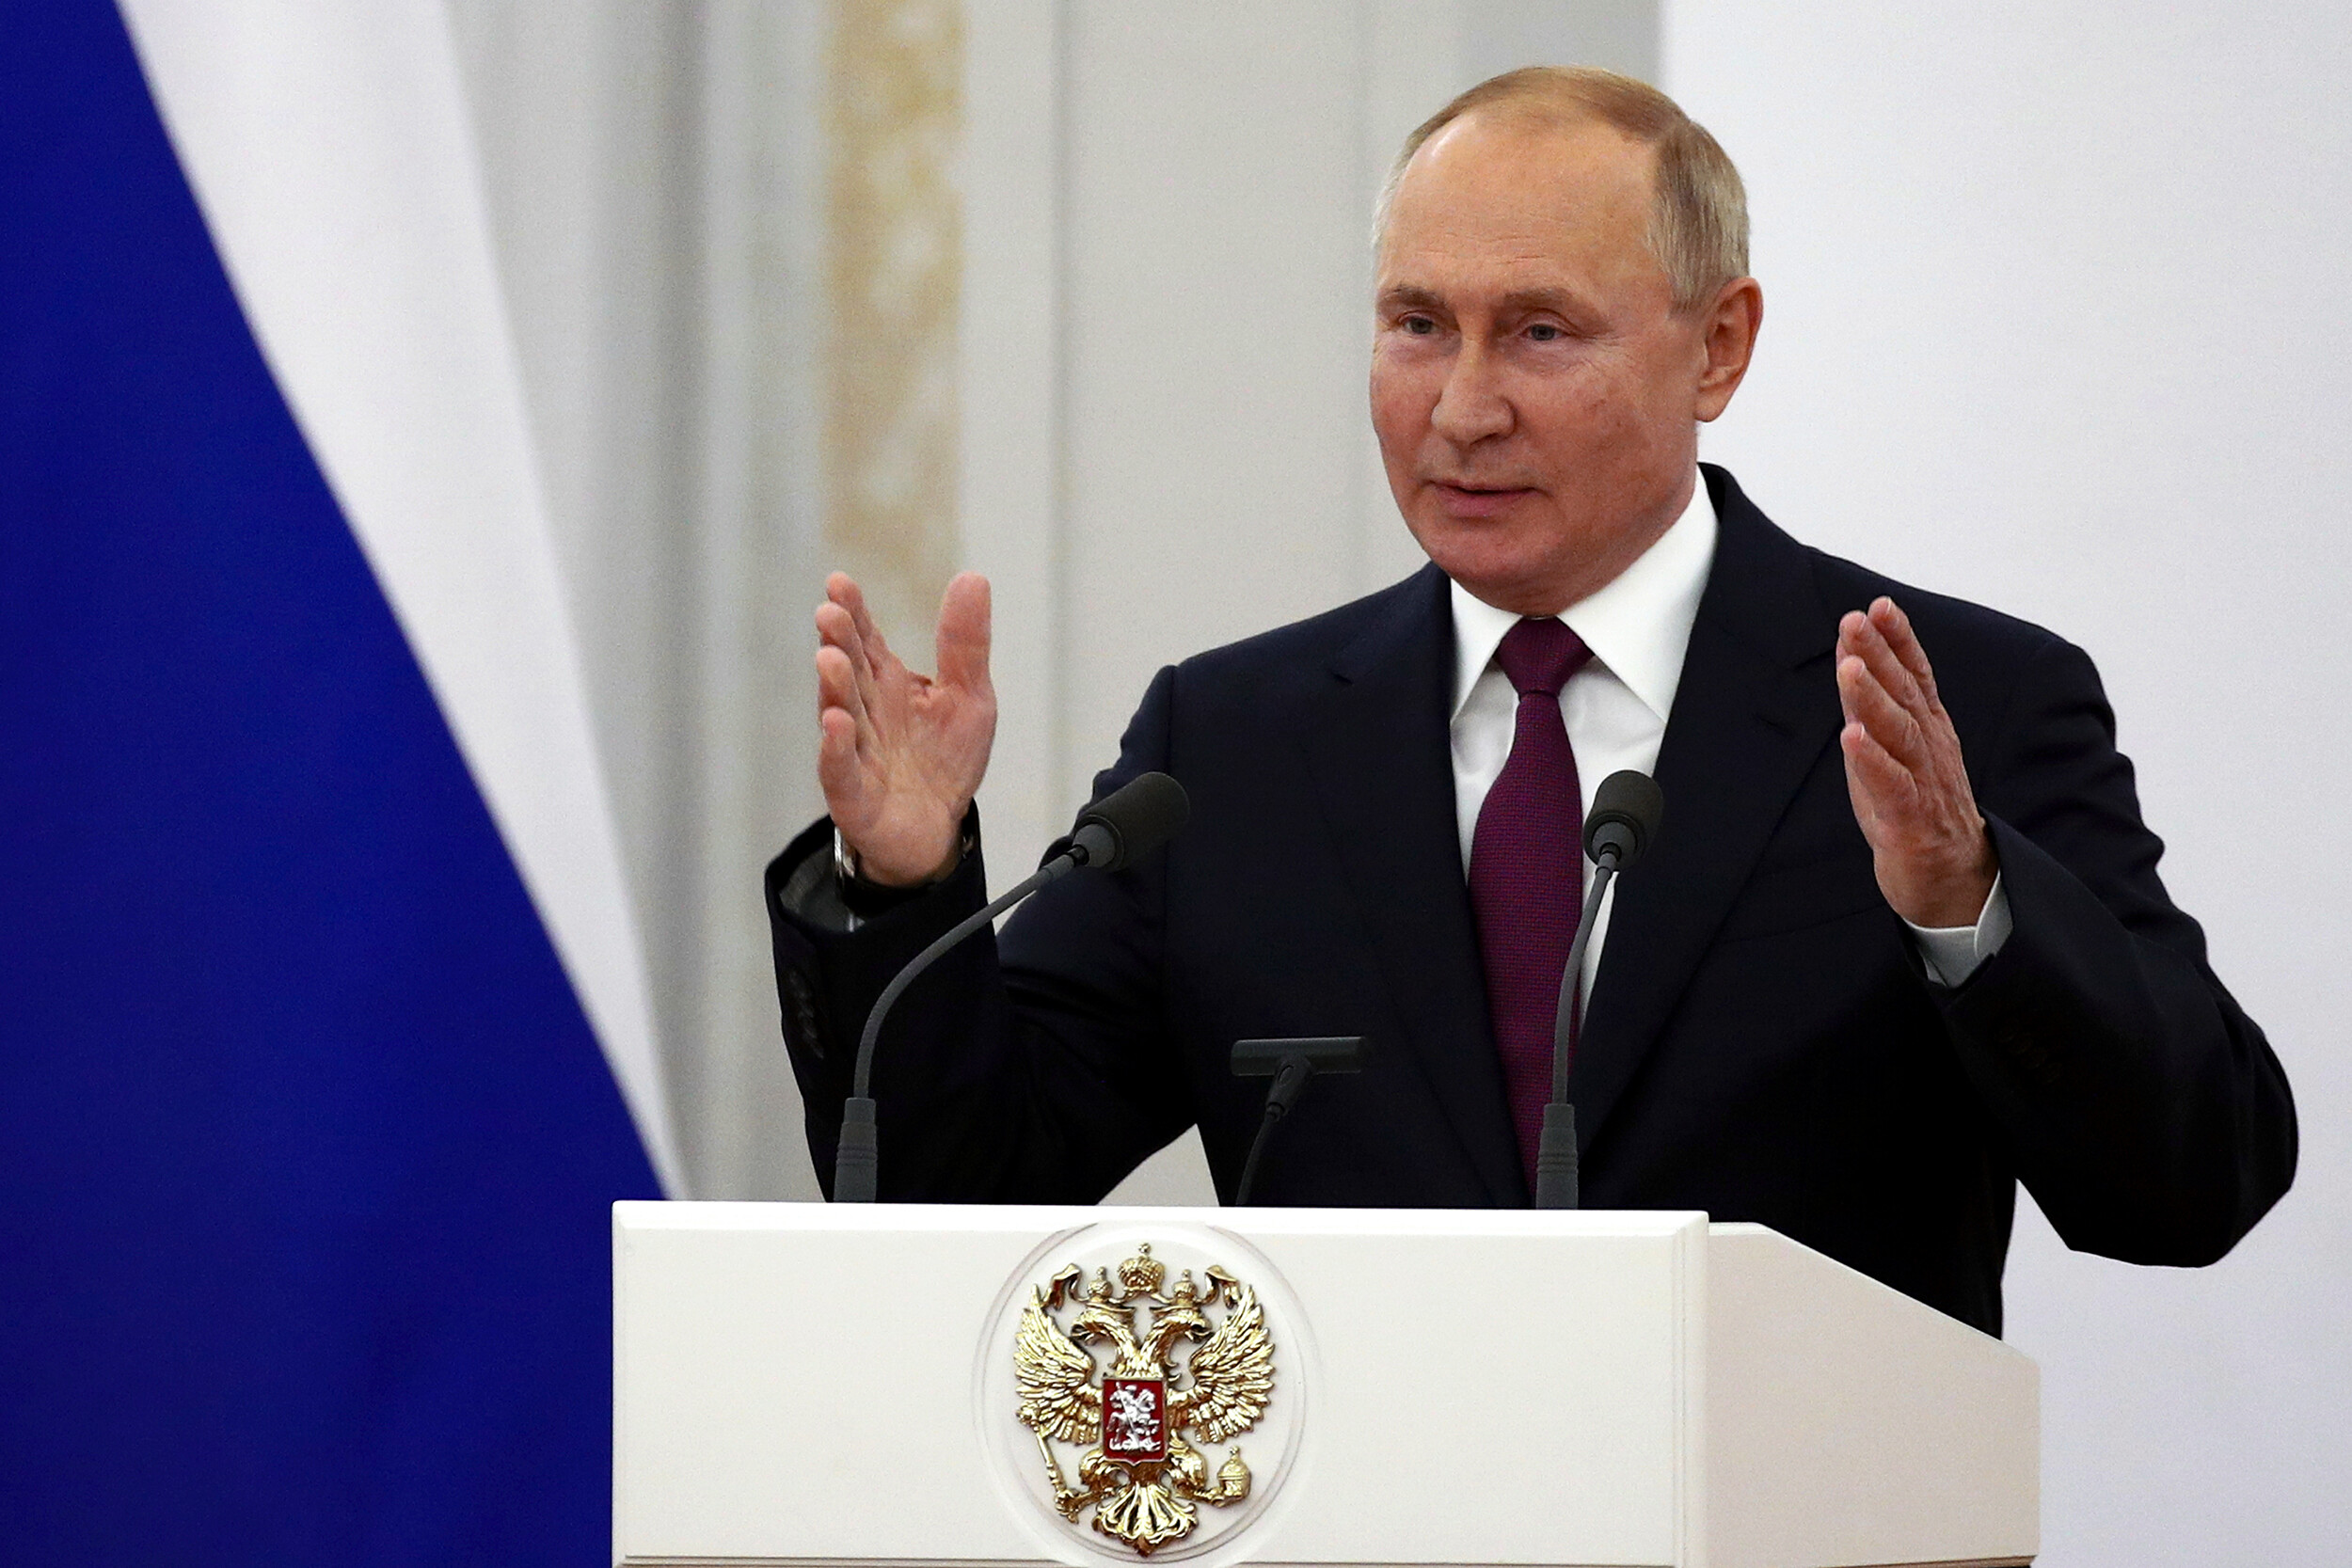 Putin says Russia needs to speed up vaccination for Covid-19